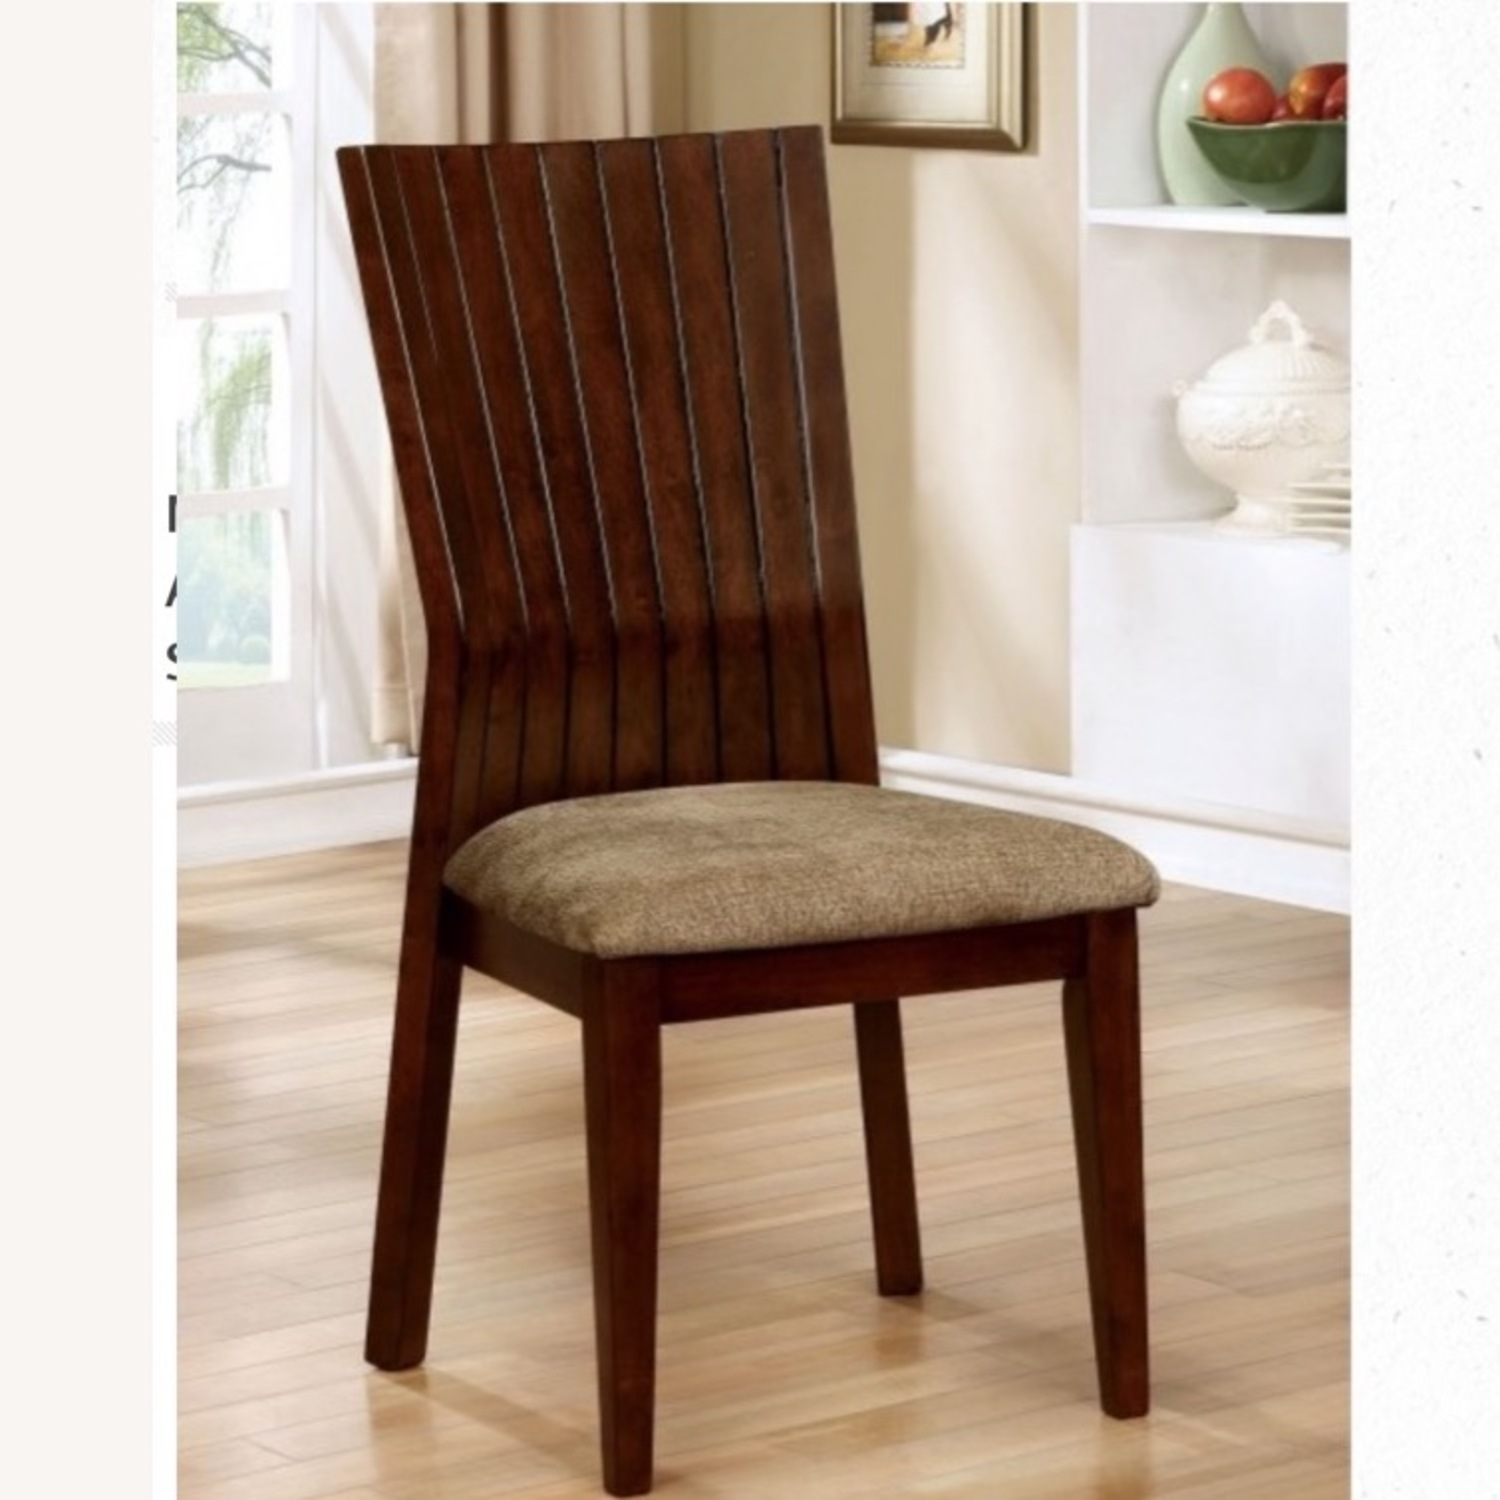 6 New Dining Chairs from Furniture of America - image-5